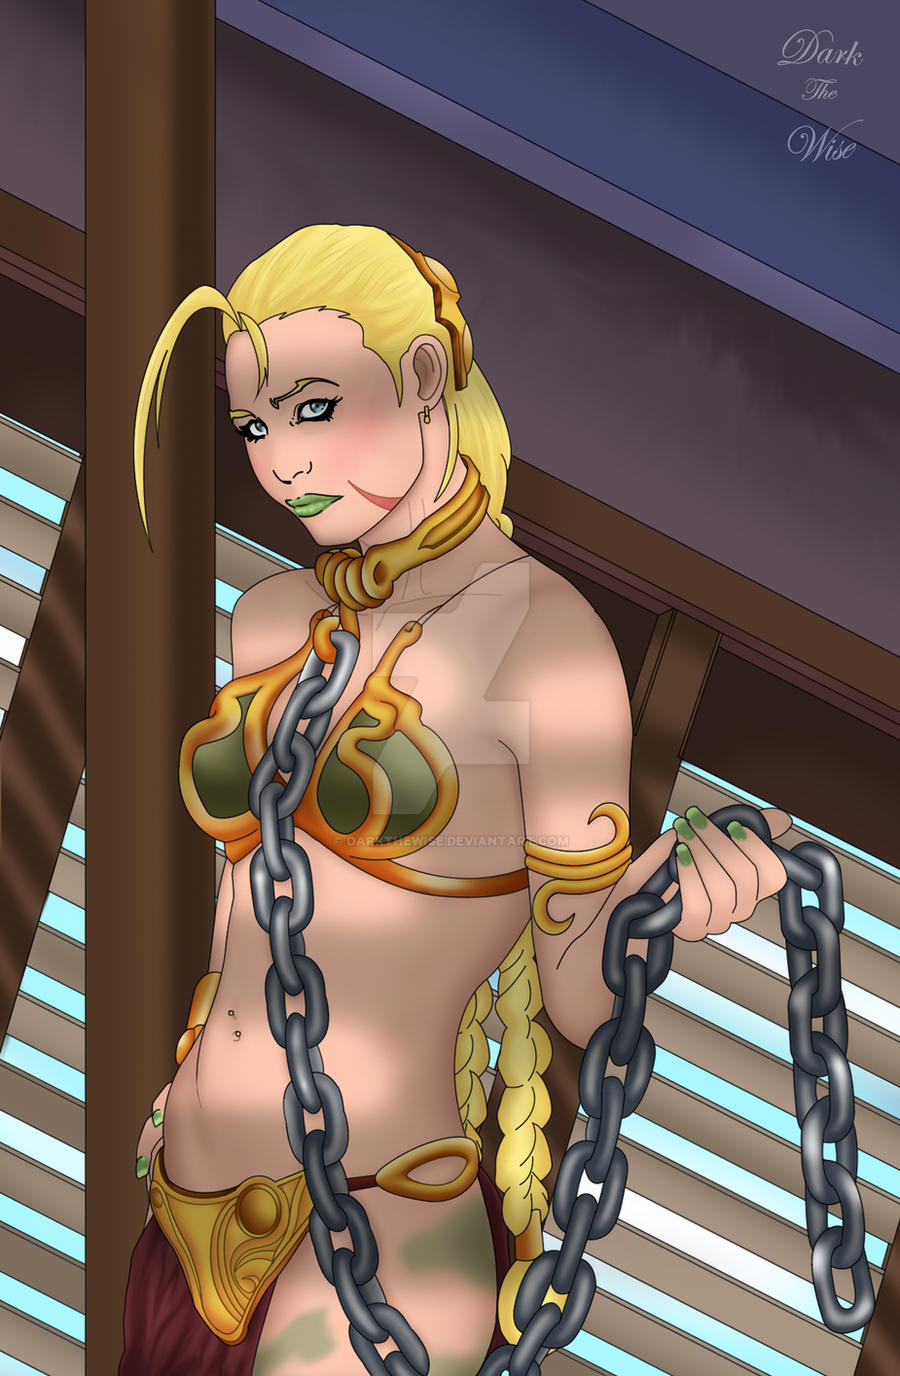 Cammy as Slave Leia by darkthewise